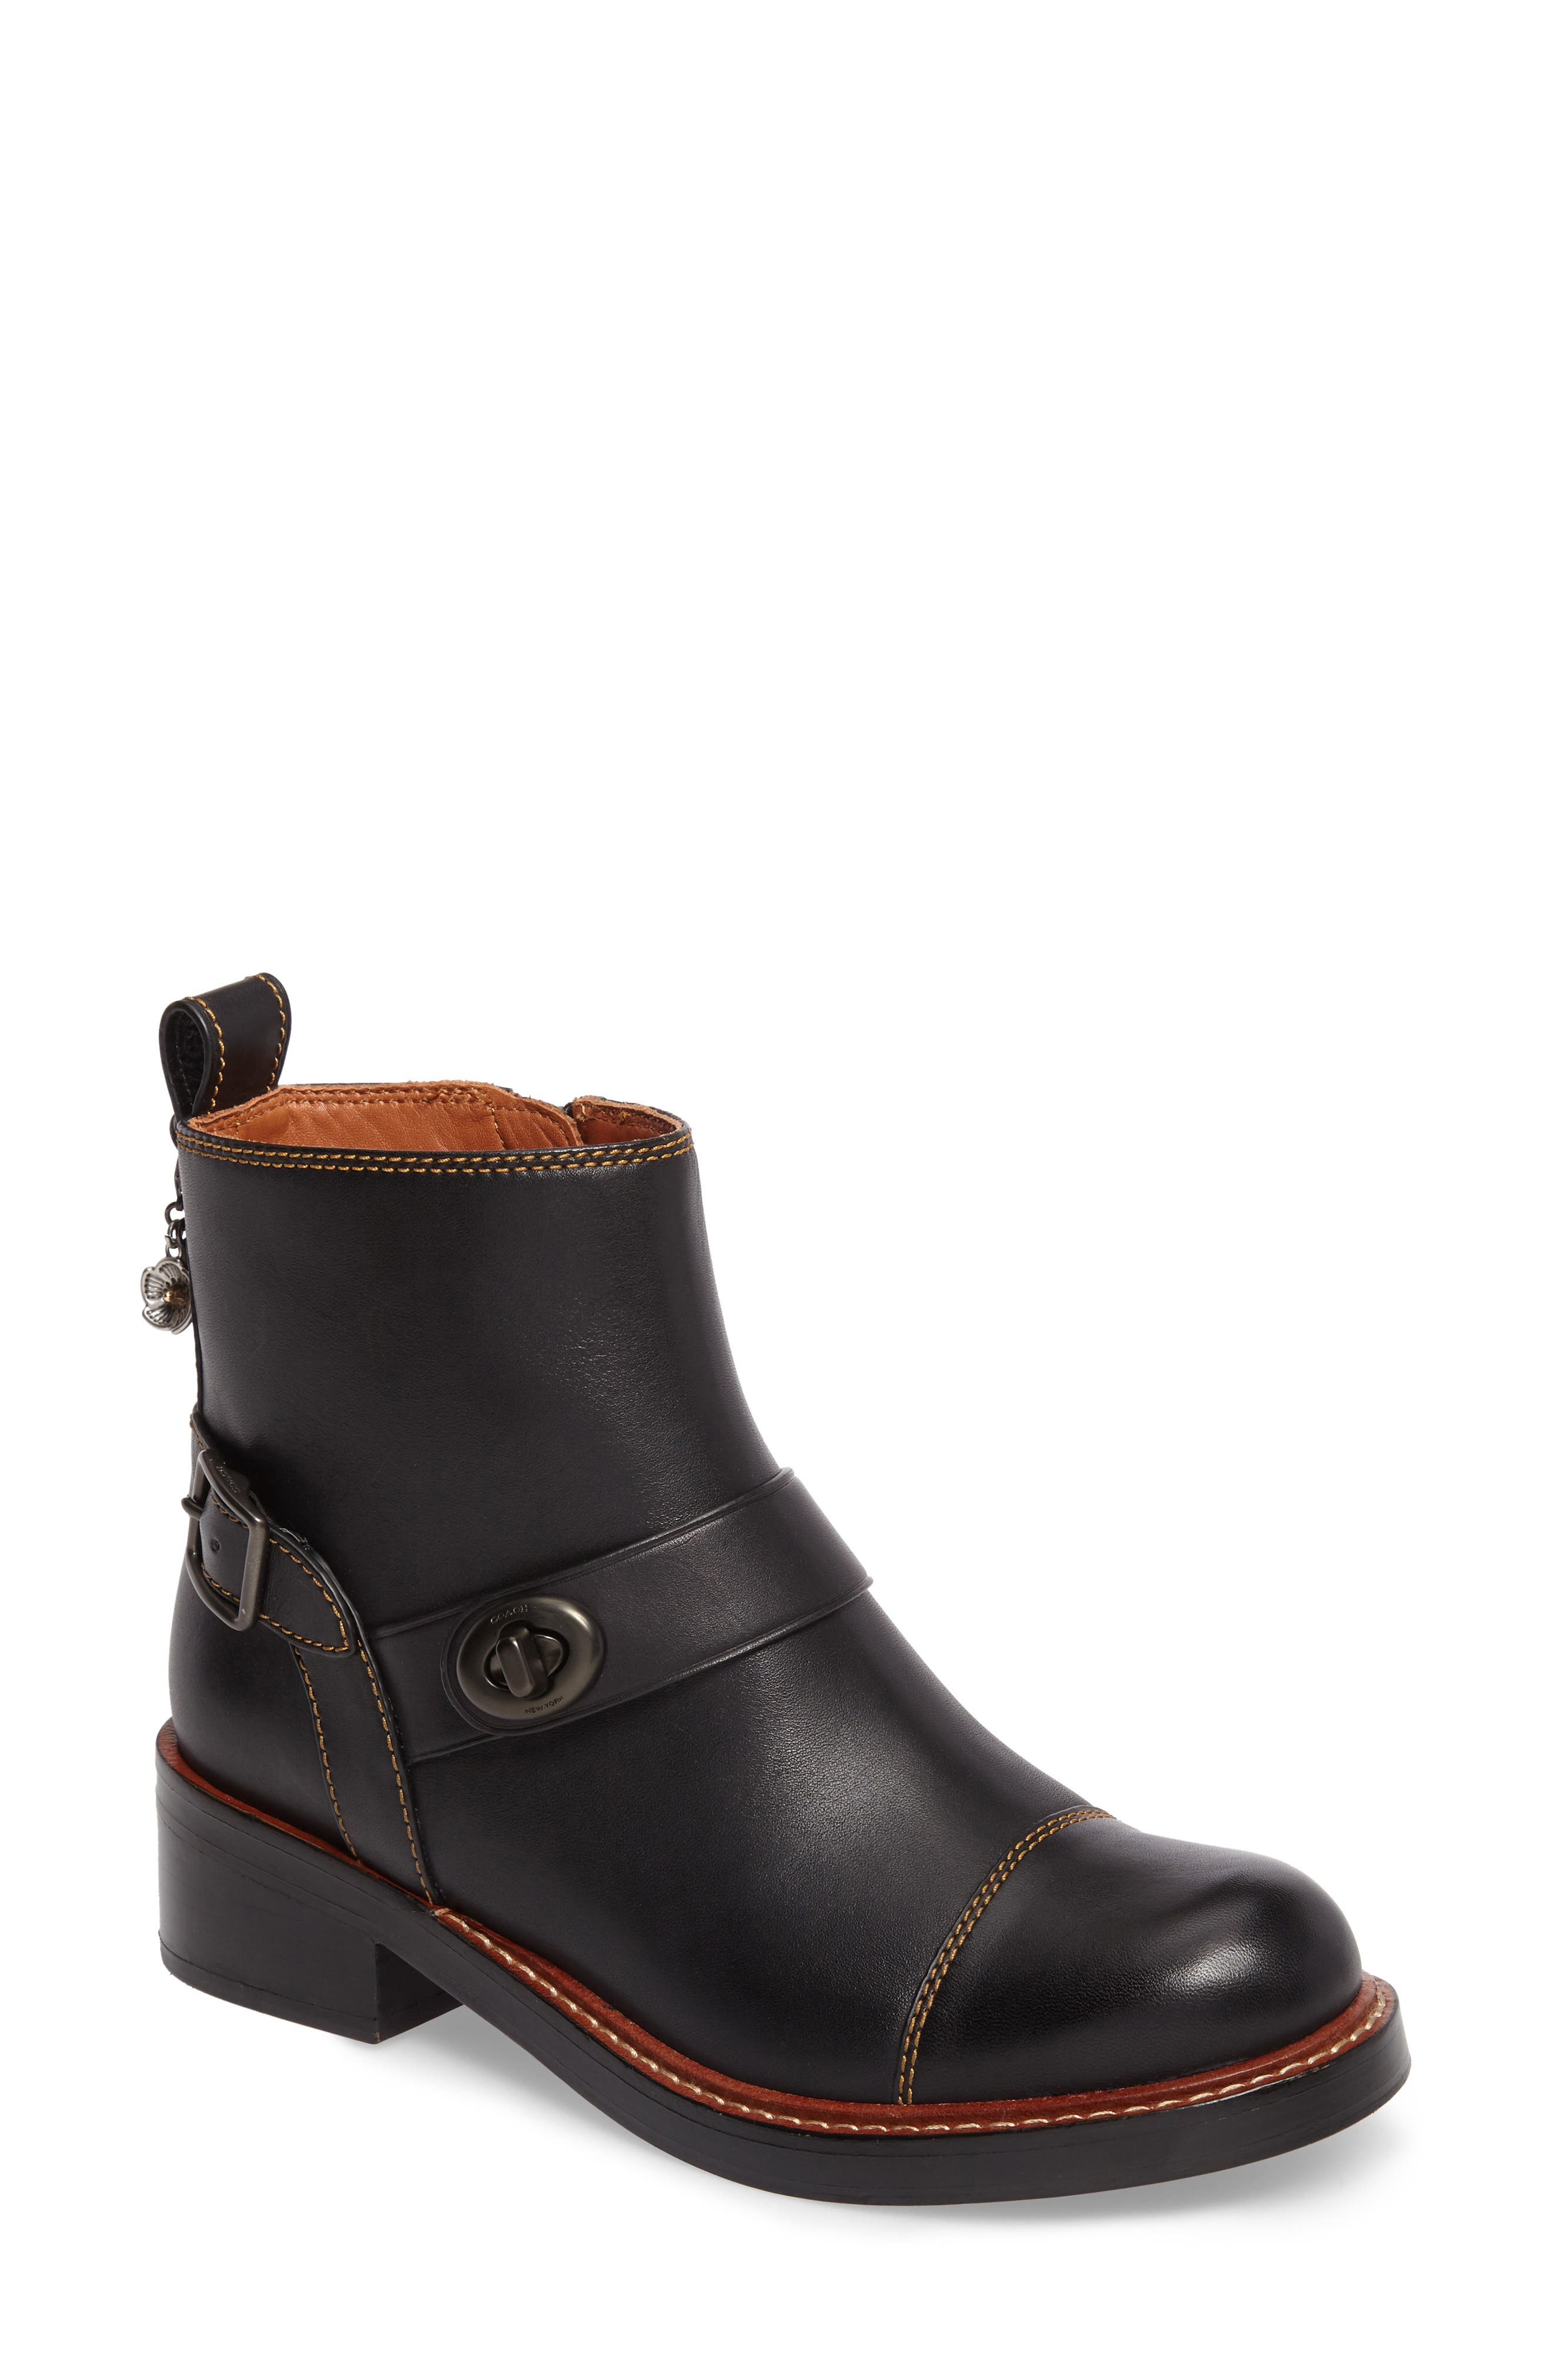 Alternate Image 1 Selected - COACH Moto Bootie (Women)